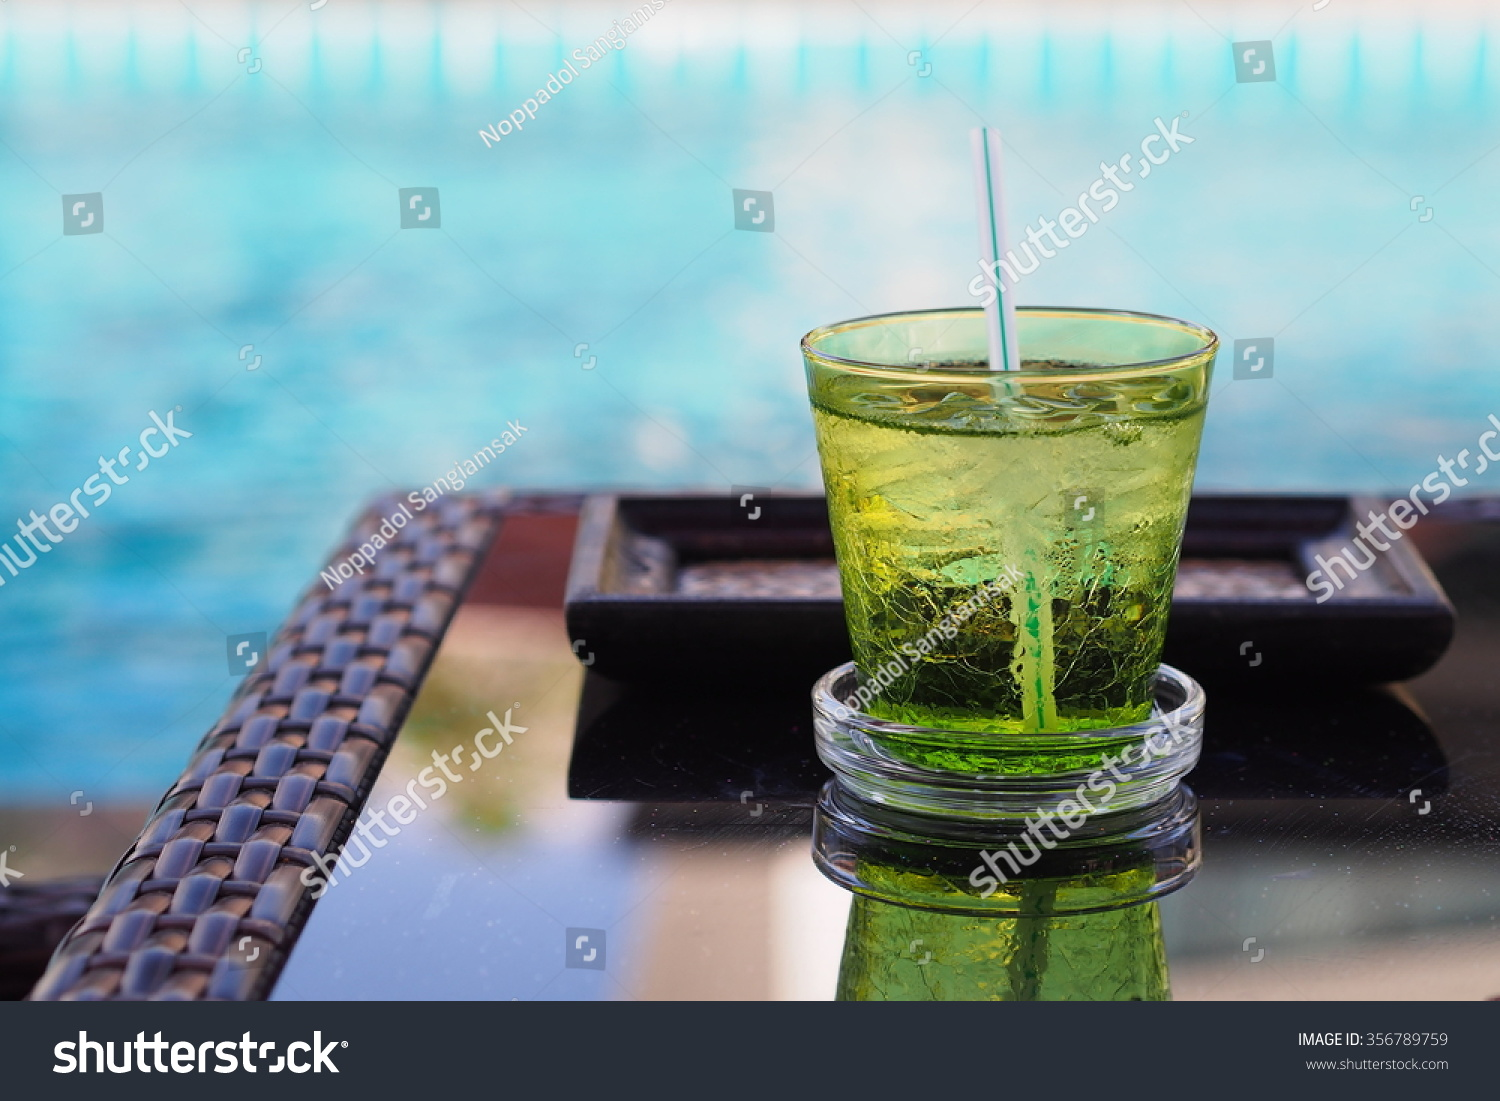 A green glass of drinking water on a table beside swimming pool stock photo 356789759 shutterstock How to make swimming pool water drinkable